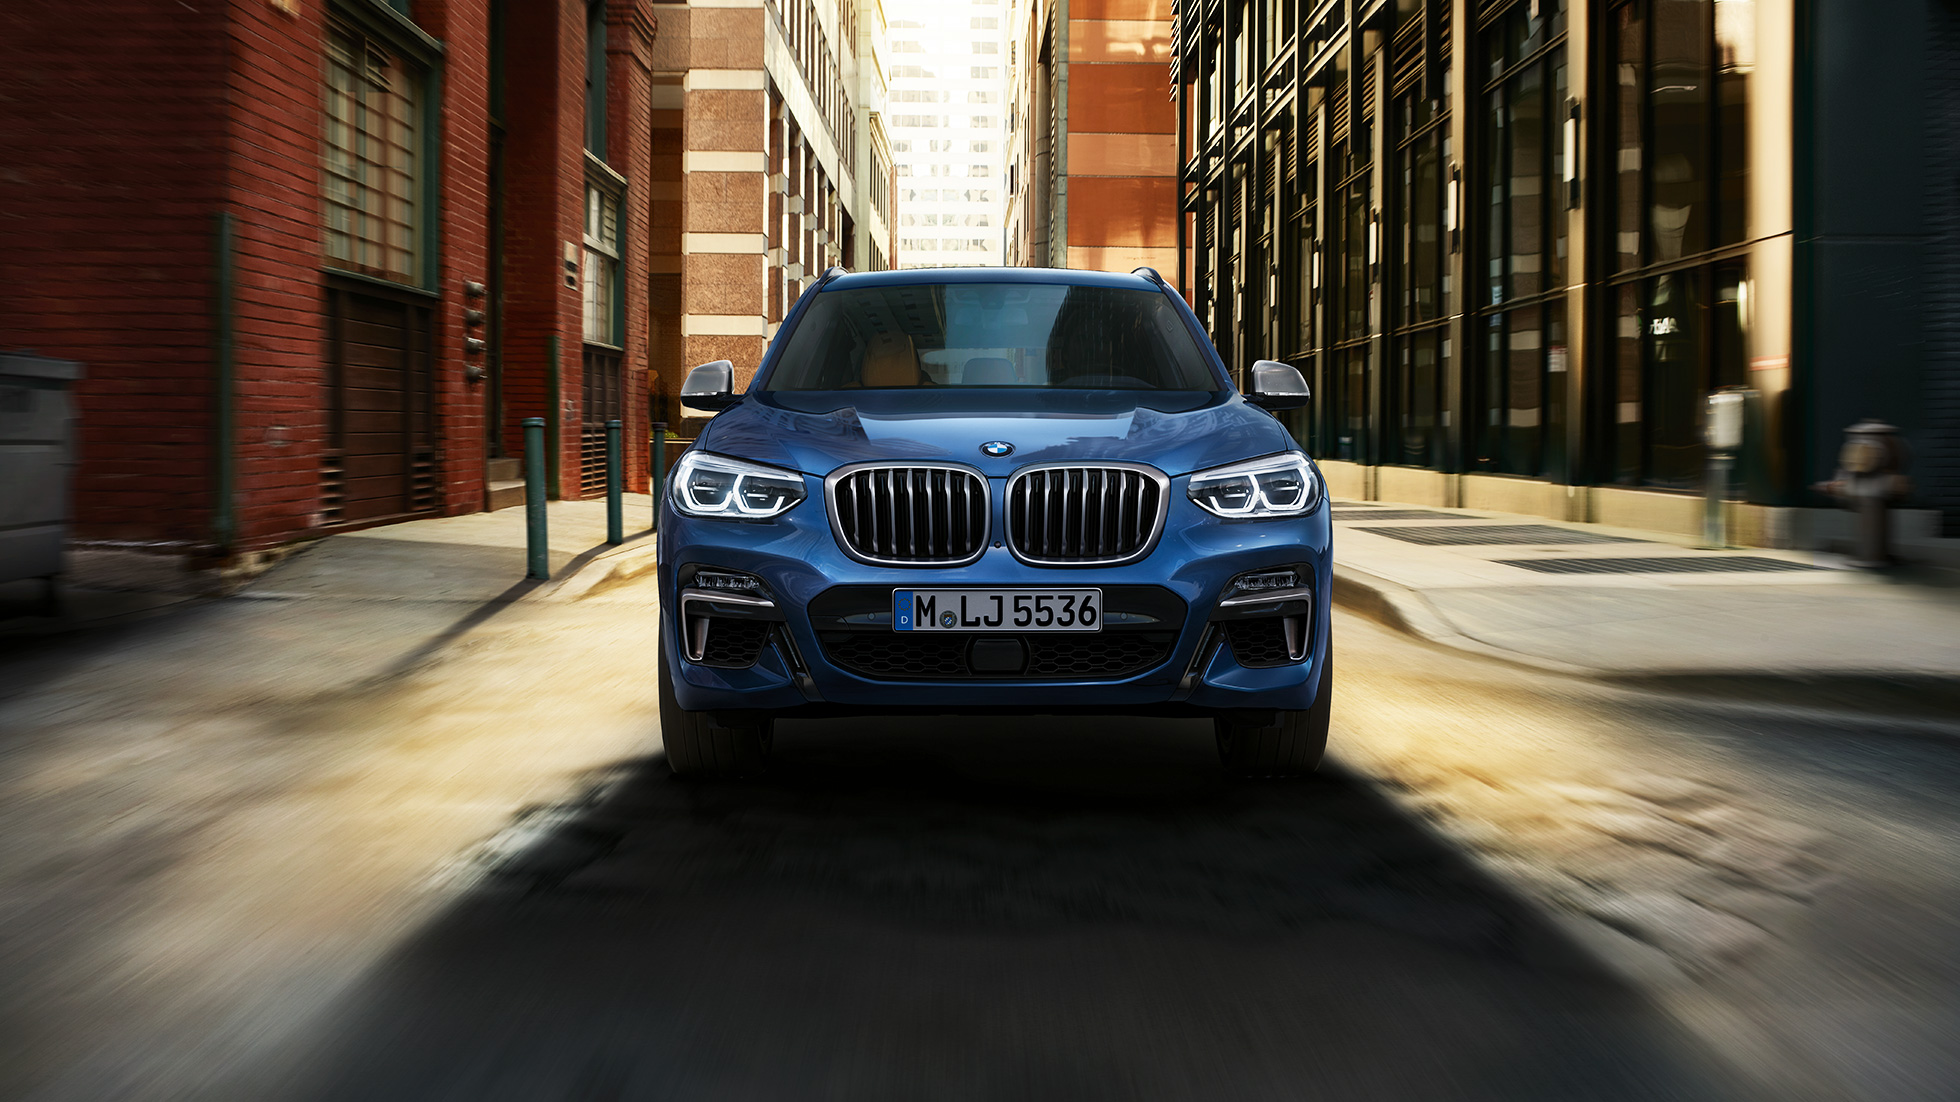 BMW X3 M40i, front shot in front of city scenery